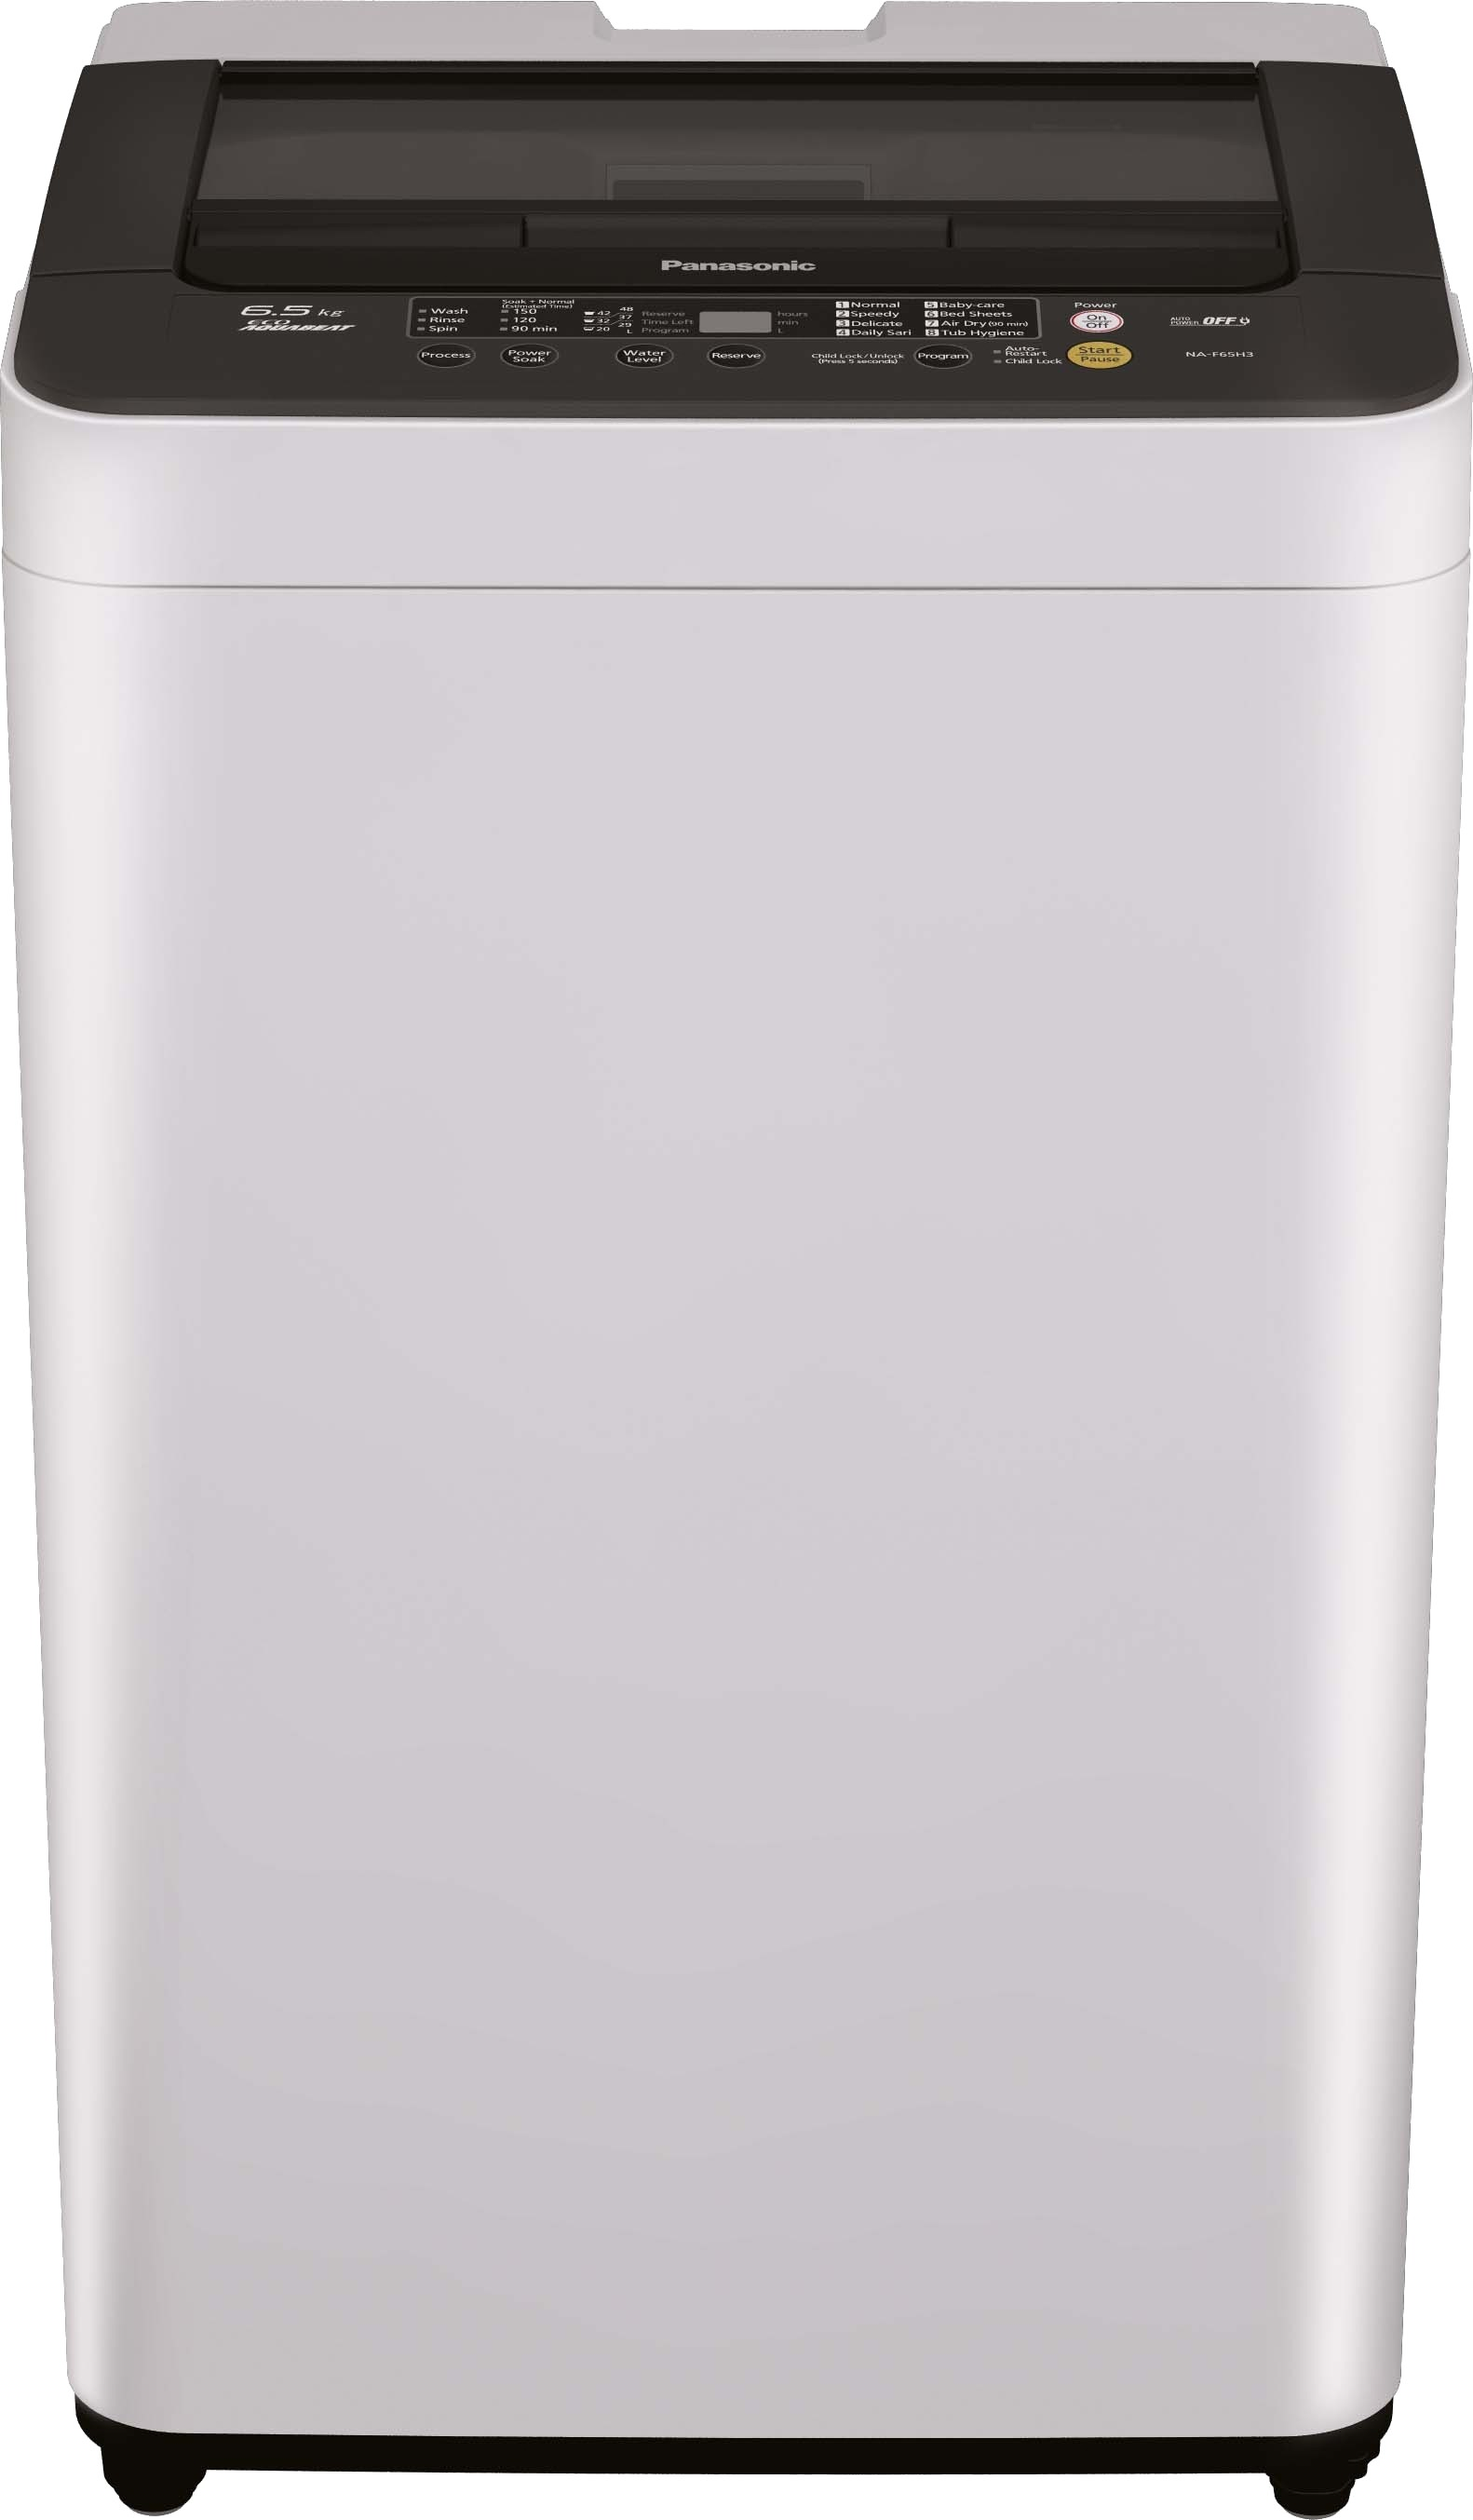 PANASONIC NA-F65B3HRB2 6.5KG Fully Automatic Top Load Washing Machine